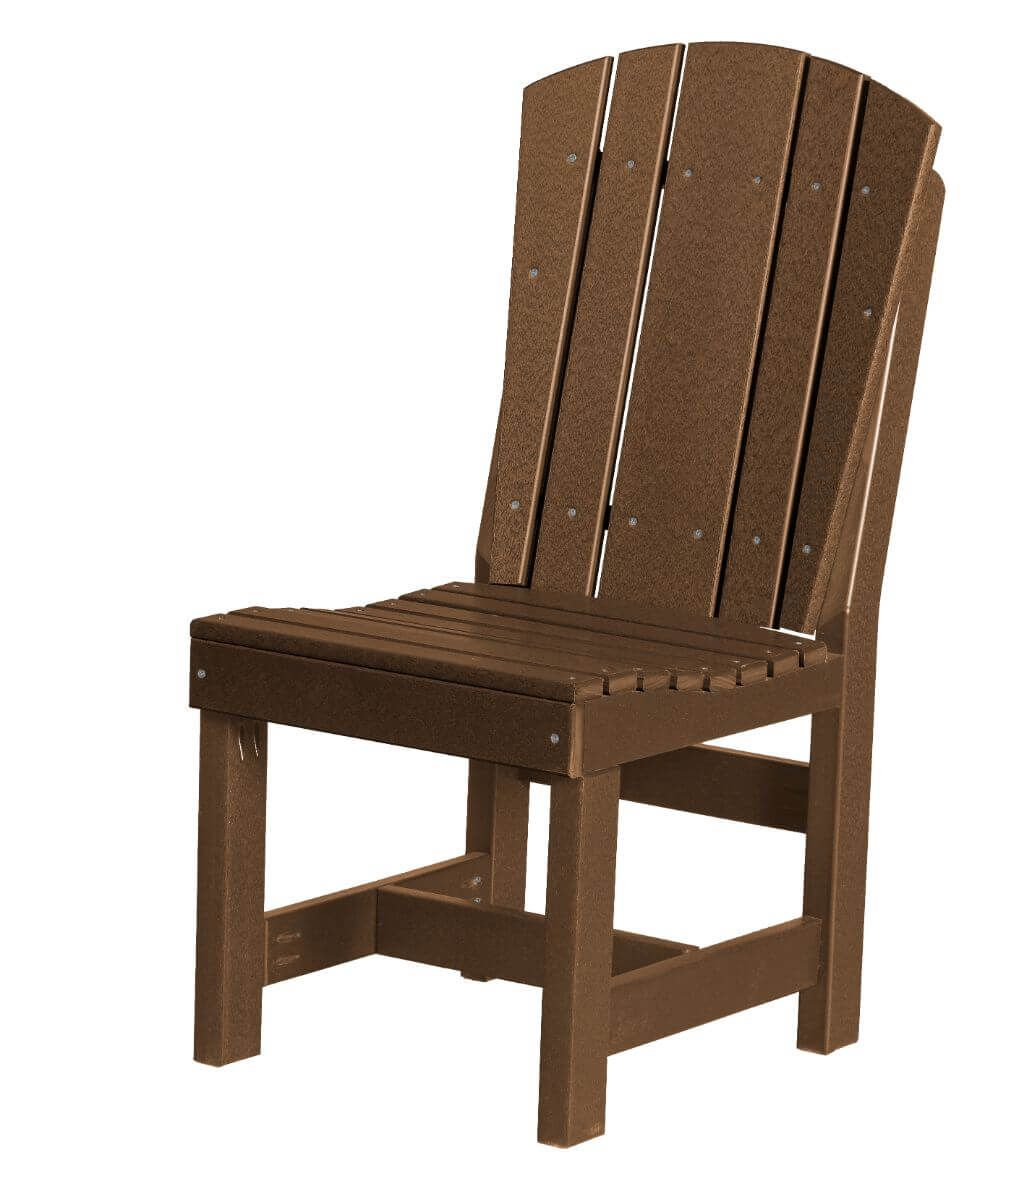 Tudor Brown Oristano Outdoor Dining Chair